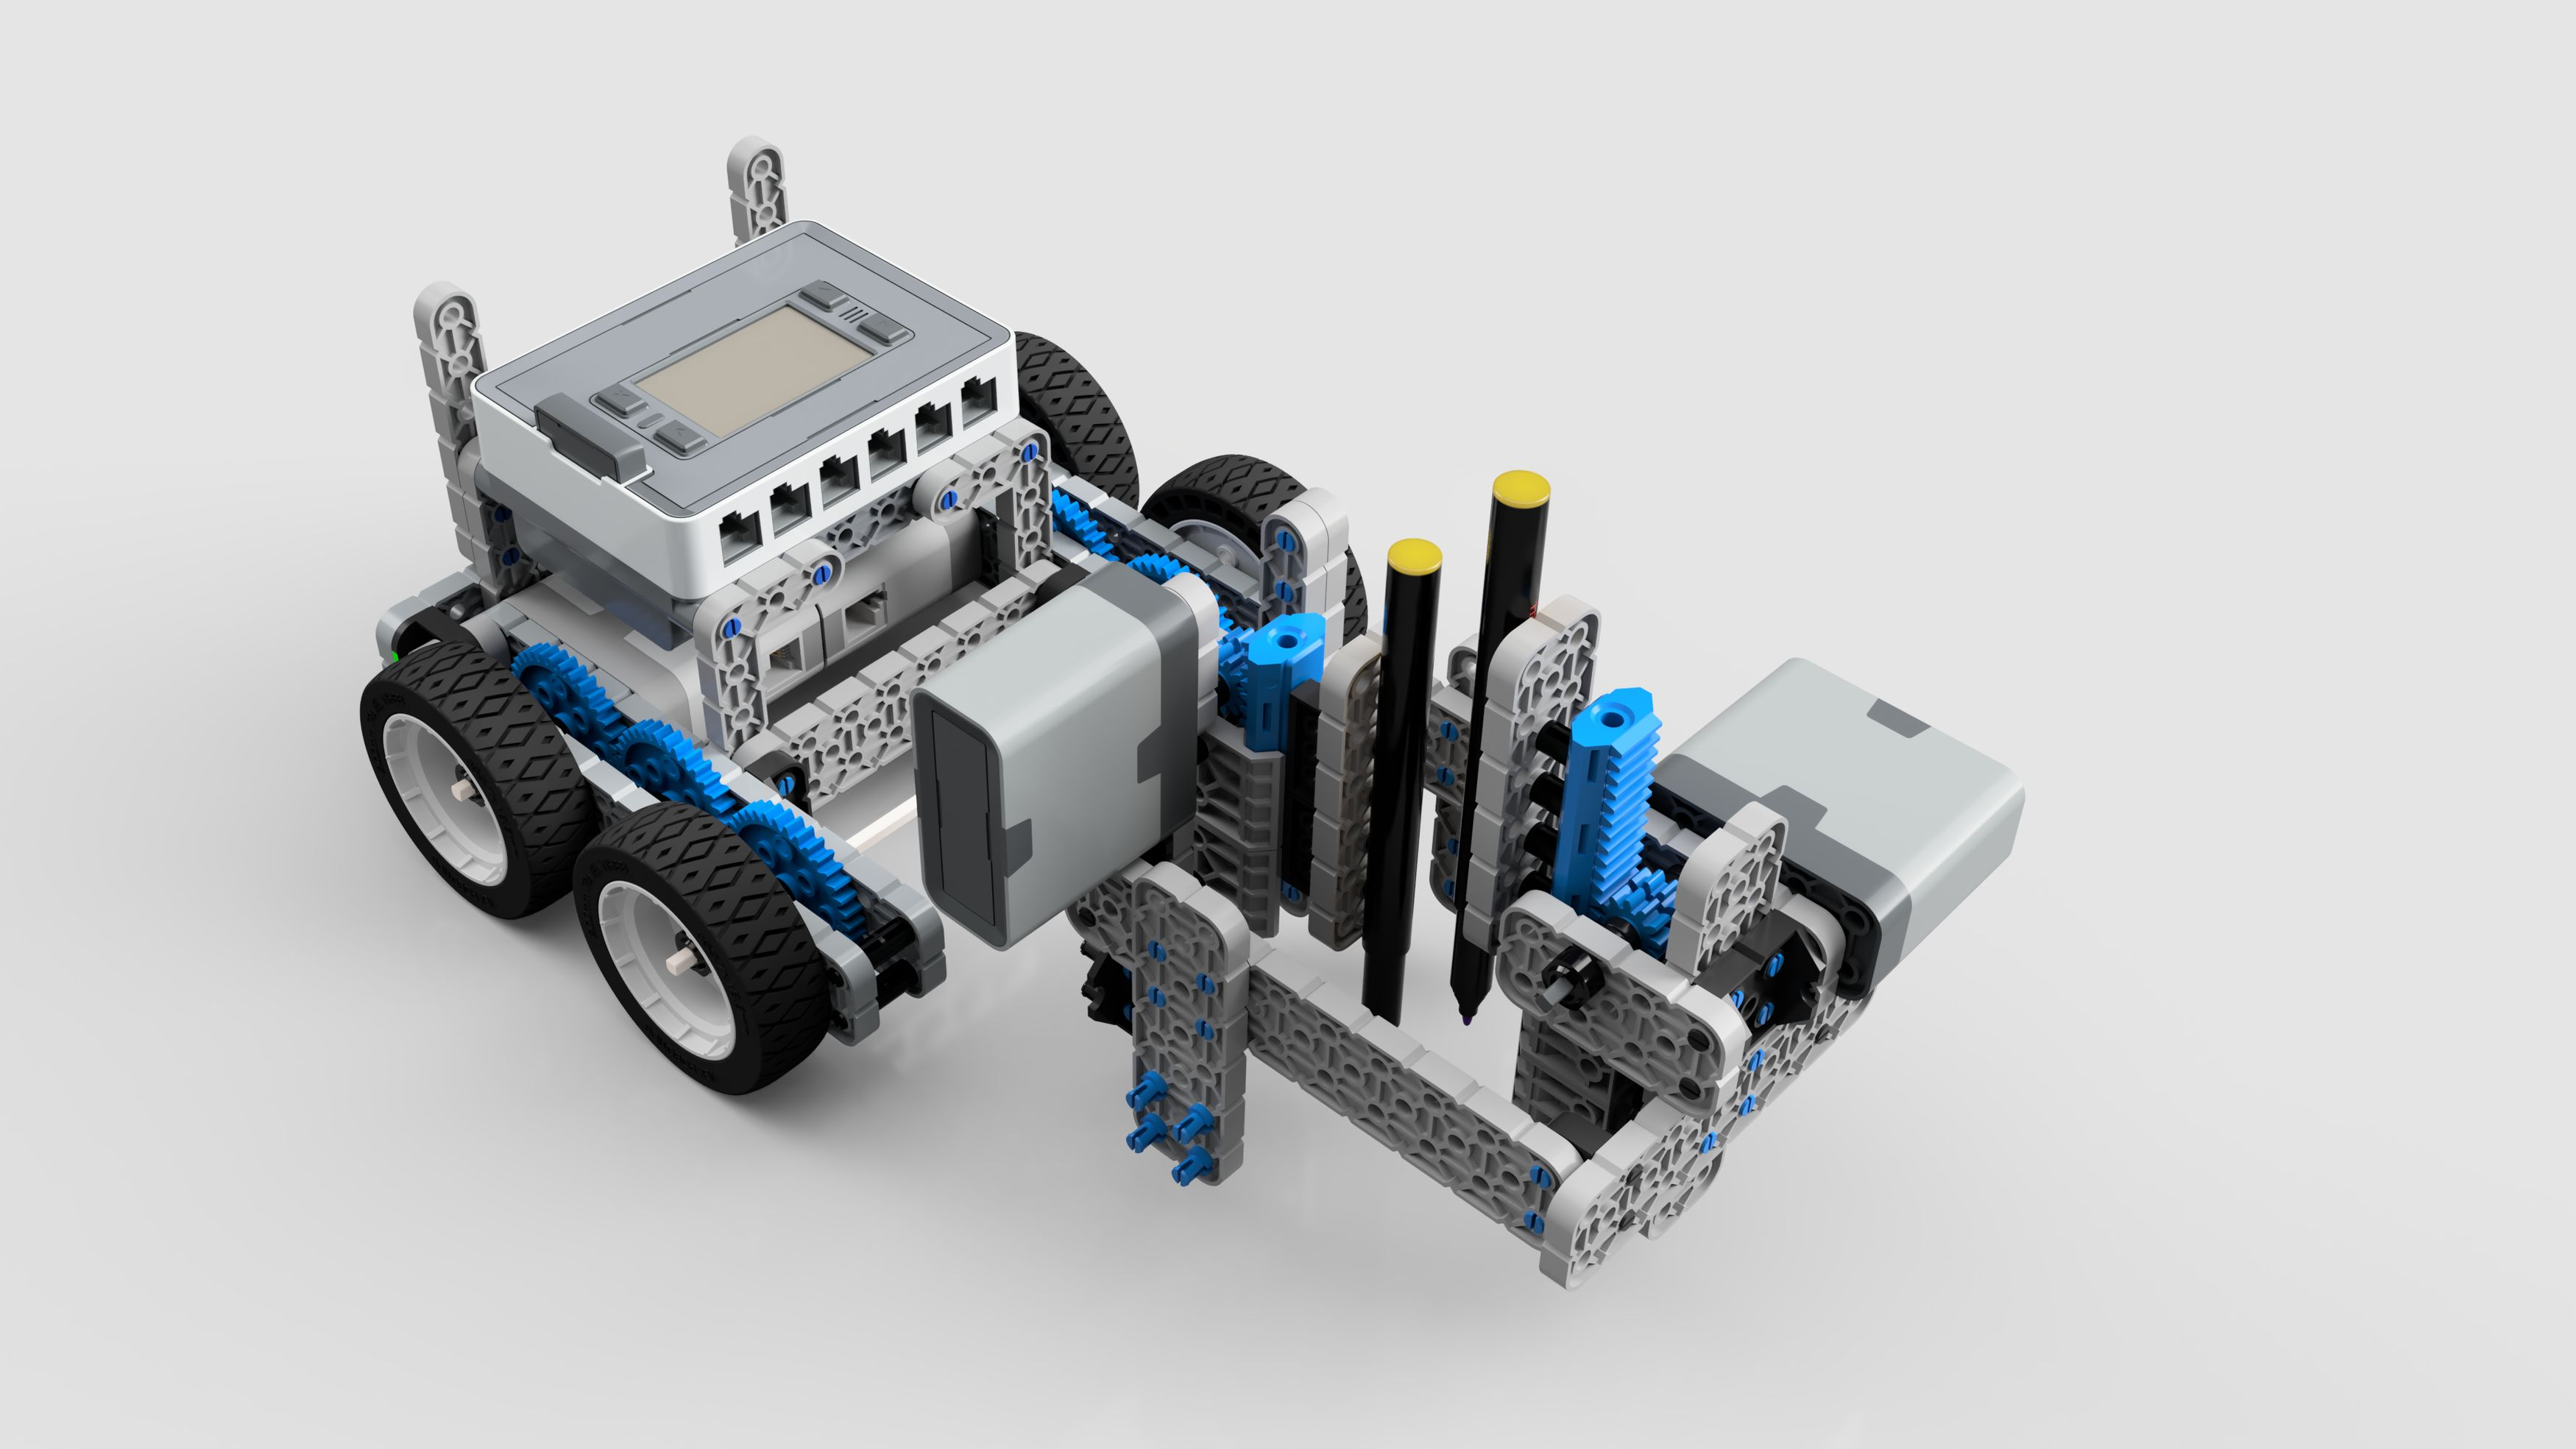 Vex-iq-robot-caneta-2020-may-24-04-59-38pm-000-customizedview23257219411-png-3500-3500